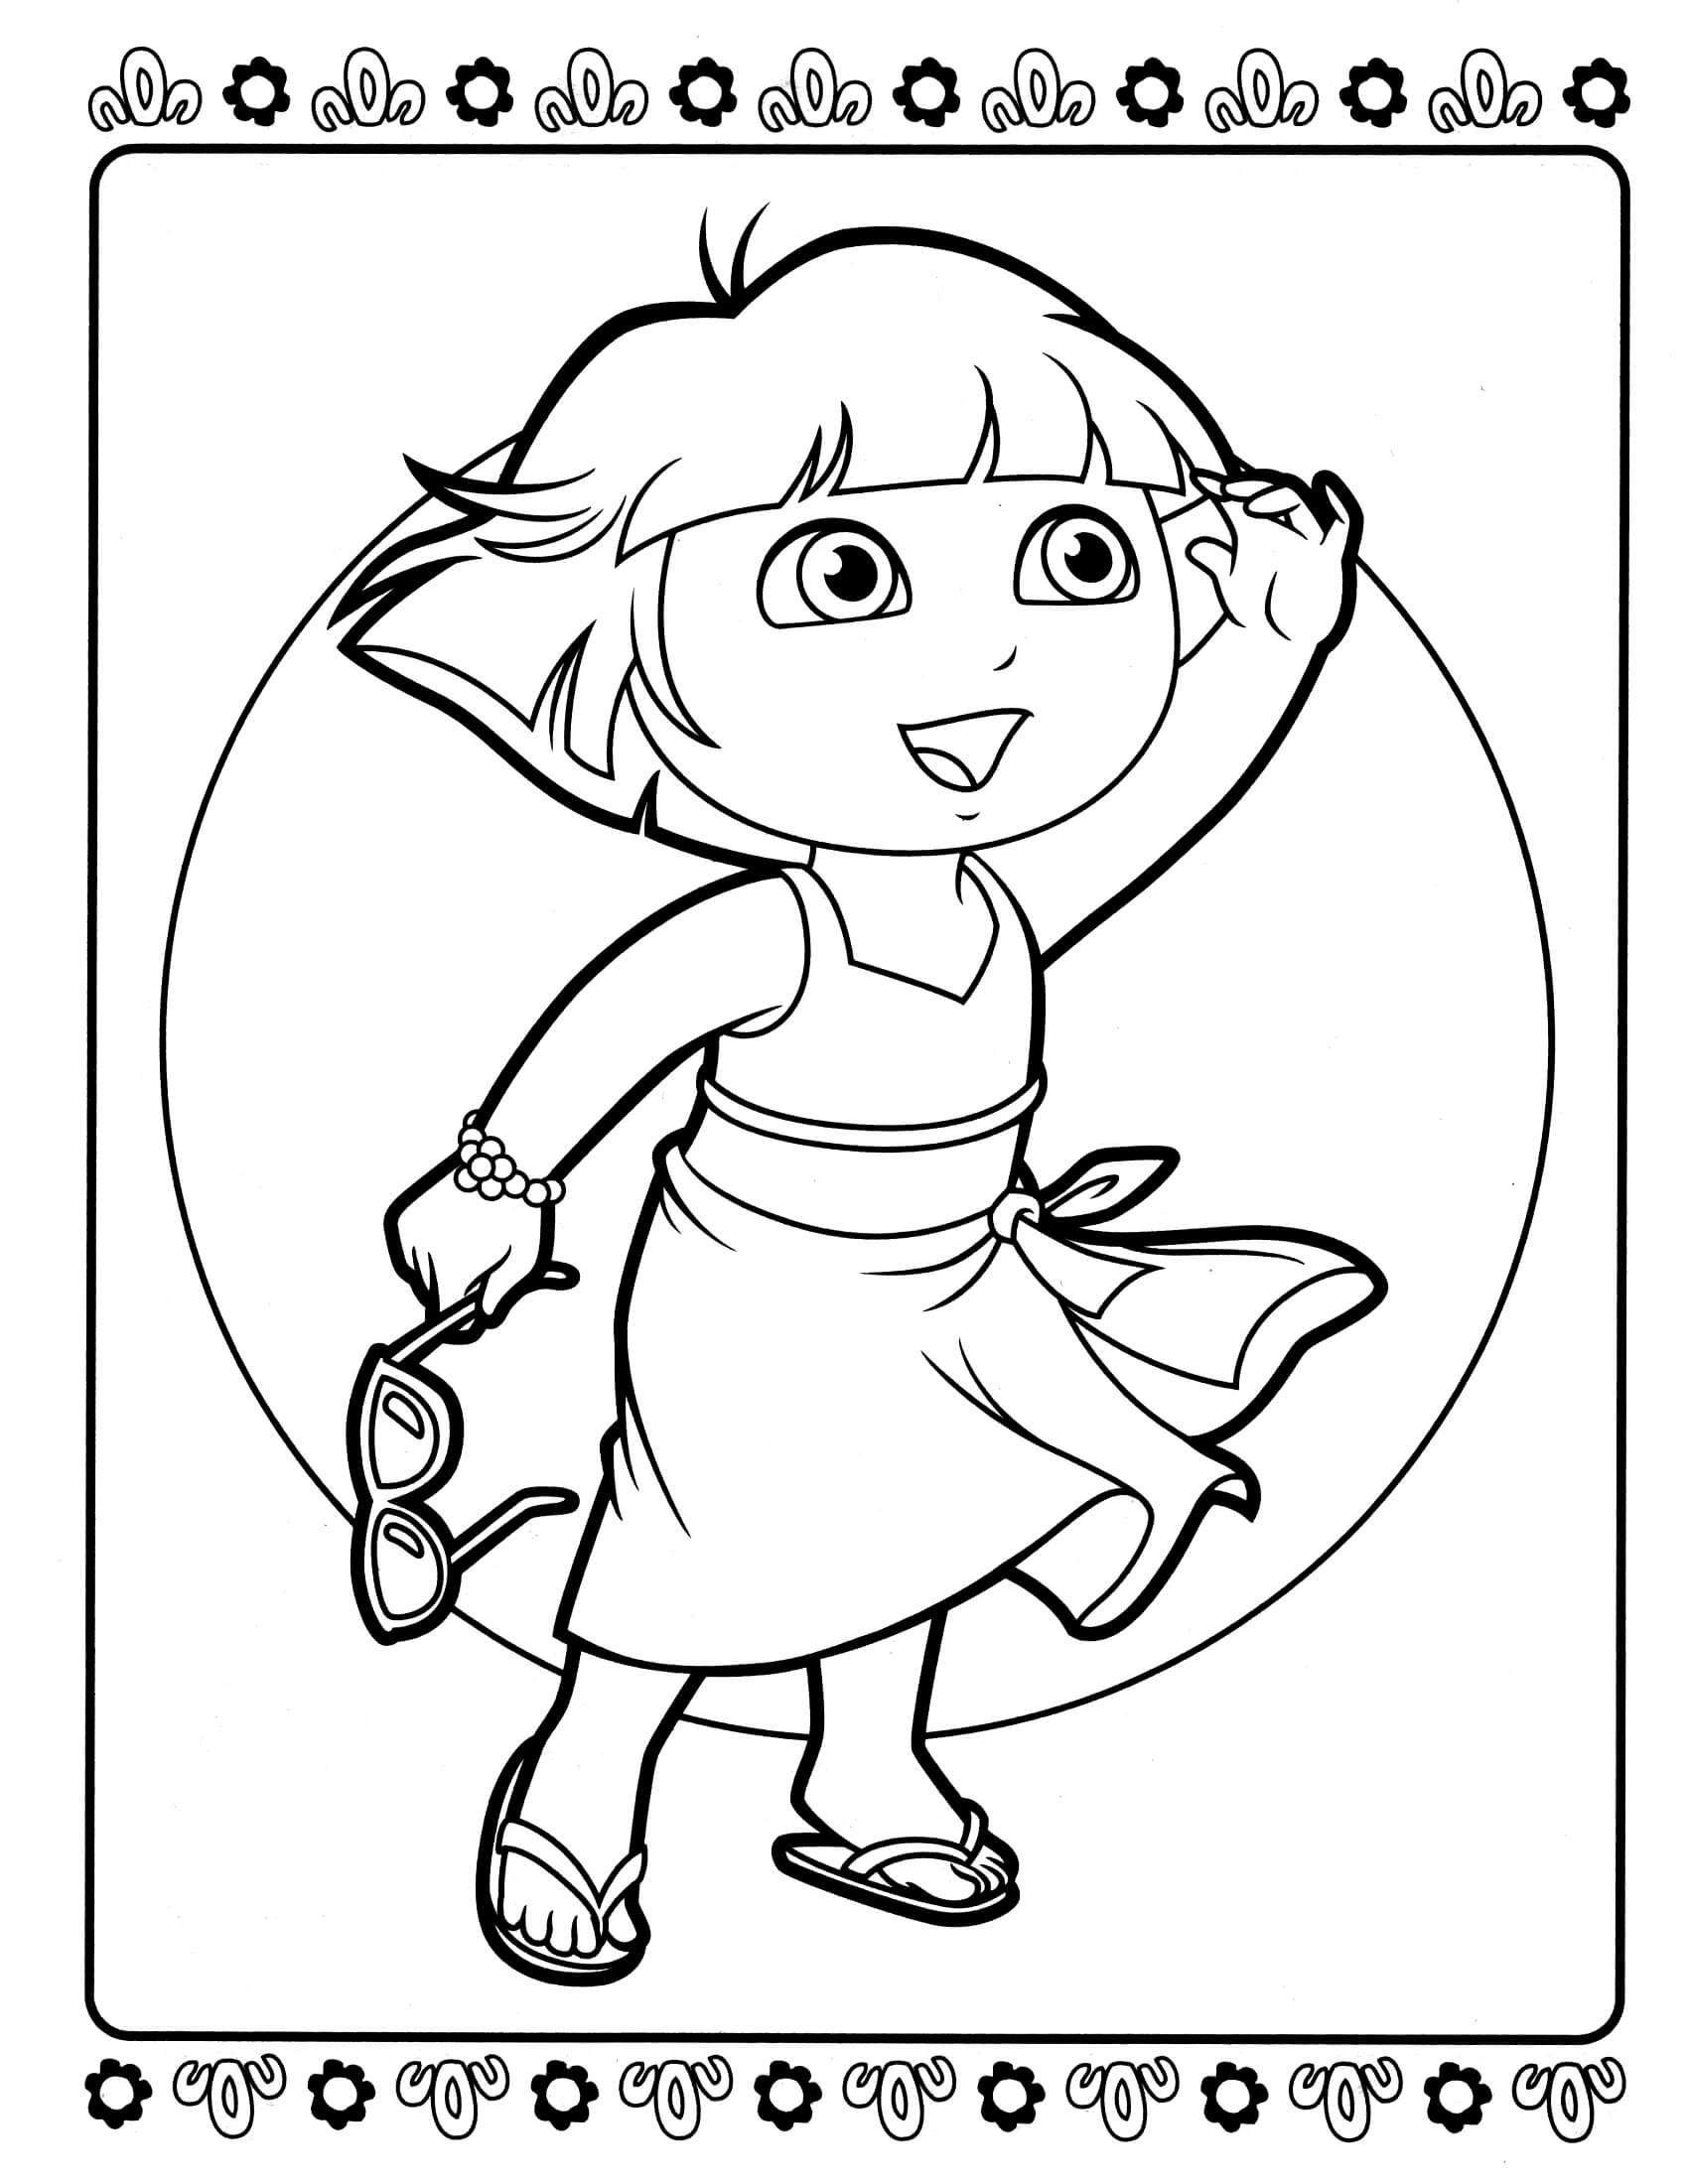 dora coloring page print download dora coloring pages to learn new things coloring page dora